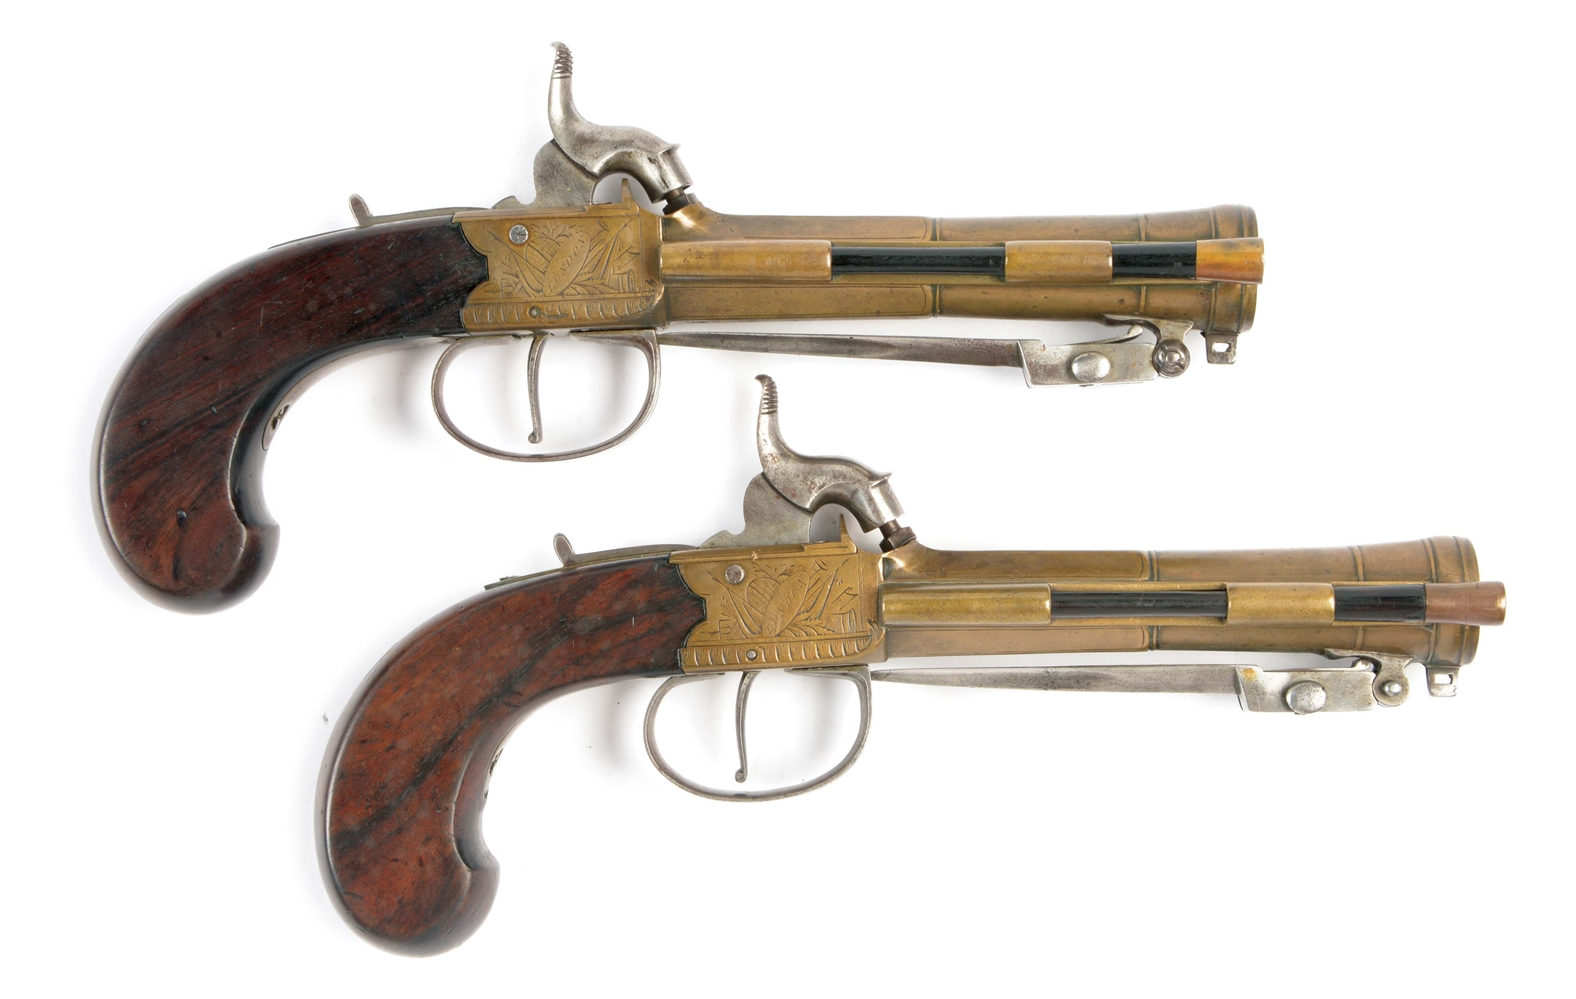 (A) LOT OF TWO: A PAIR OF ENGLISH BRASS BARRELED PERCUSSION BLUNDERBUSS PISTOLS CONVERTED FROM FLINTLOCK, WITH SNAP BAYONETS BY BLAKE OF LONDON, GEORGE 1790-1806 AT 95 WAPPING OLD STAIRS.